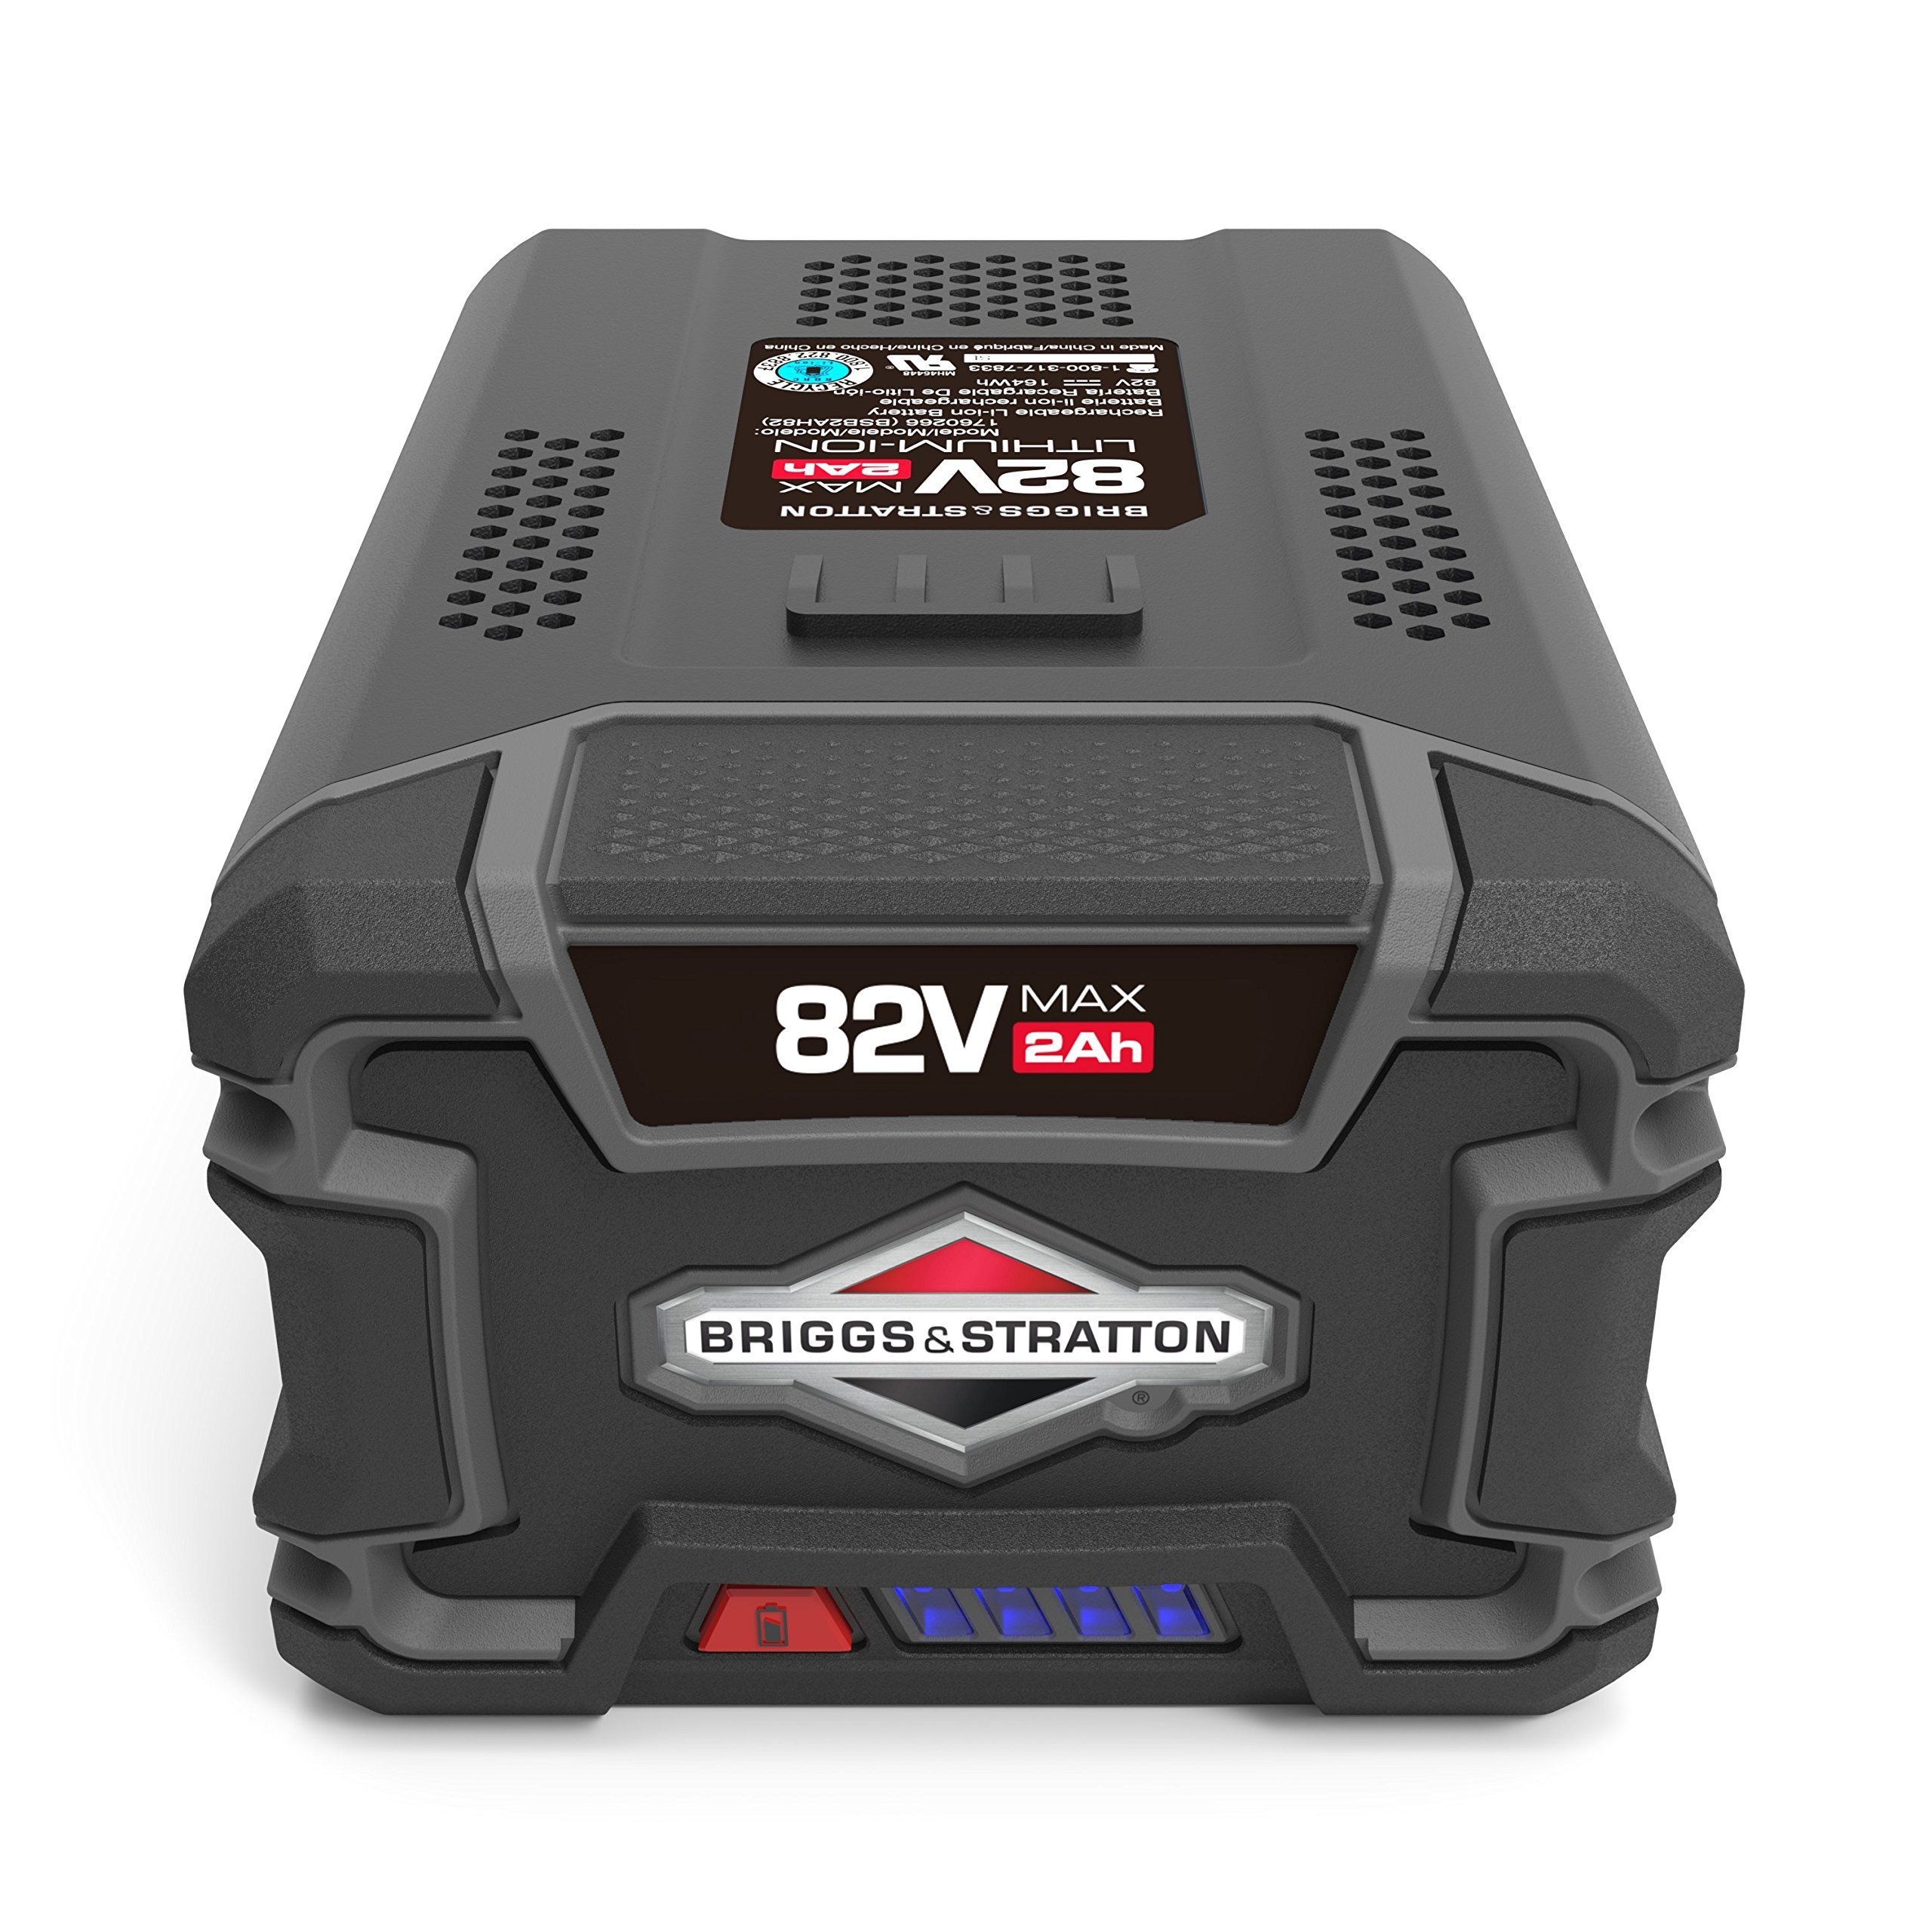 Snapper XD BSB2AH82 82V 2.0Ah Lithium Ion Battery for Snapper XD Cordless Tools, 1760266 -- Awesome products selected by Anna Churchill